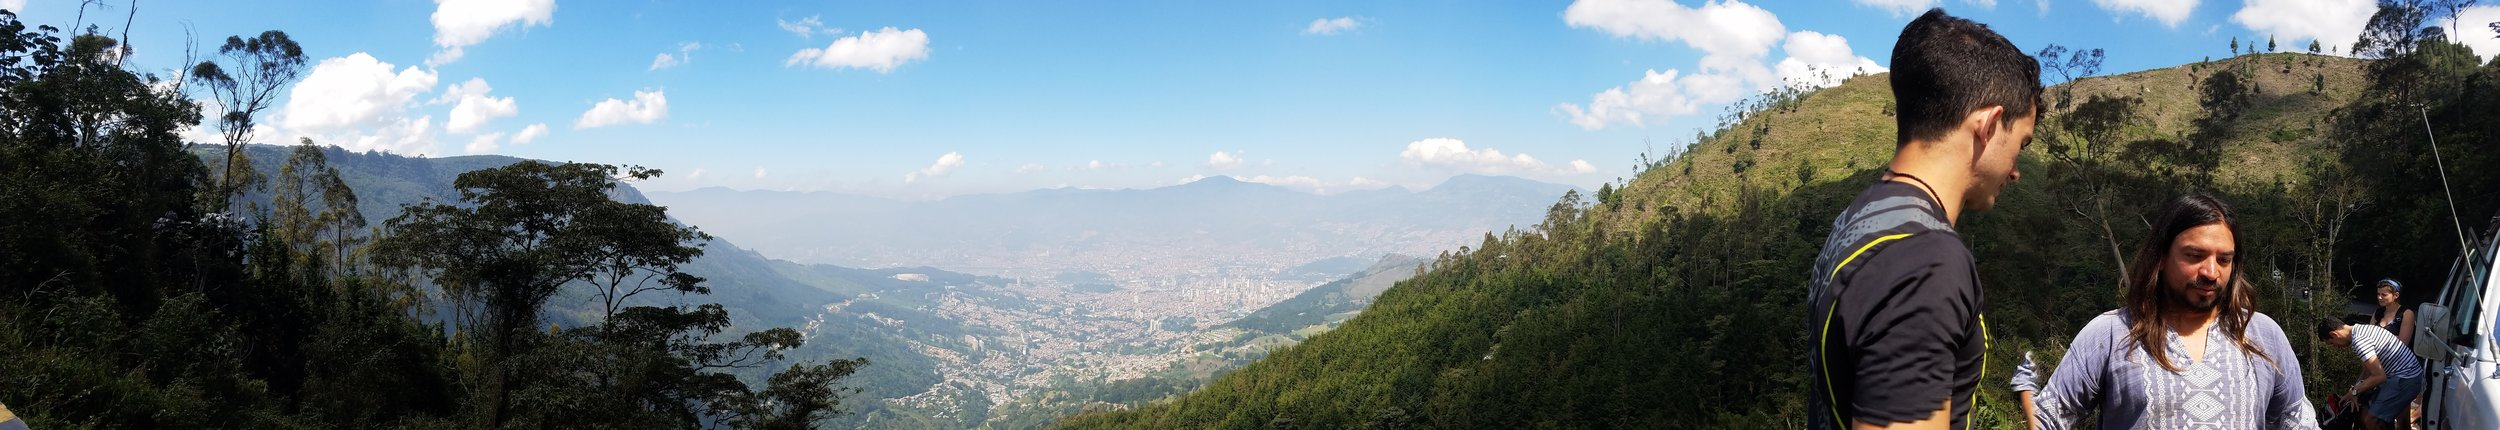 A view of Medellín from above